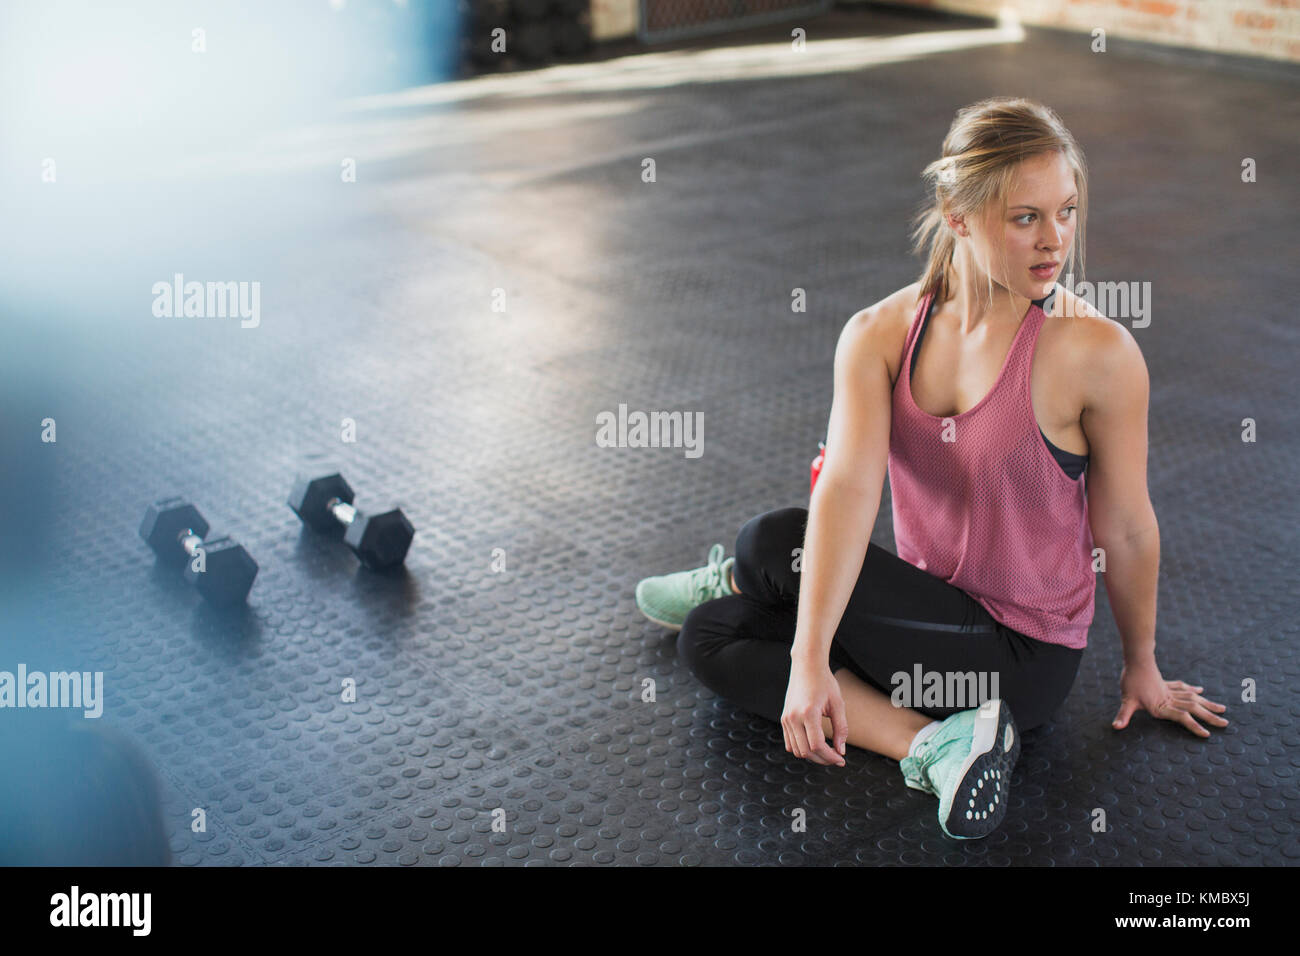 Young woman stretching, twisting in gym next to dumbbells - Stock Image